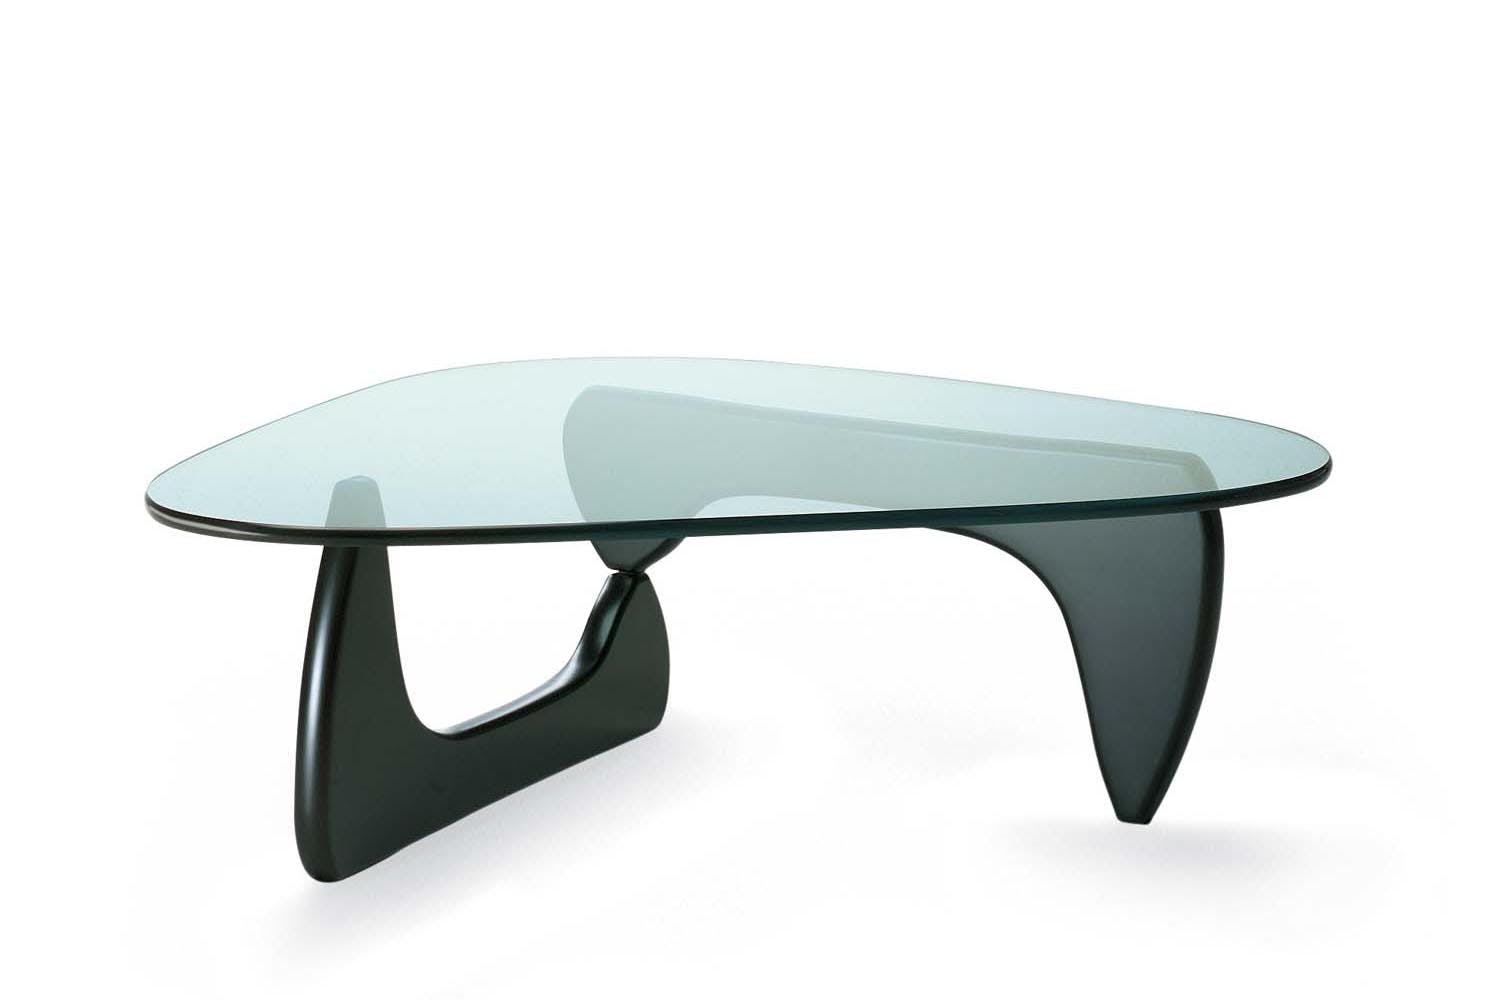 noguchi coffee table black ash by isamu noguchi for vitra. Black Bedroom Furniture Sets. Home Design Ideas